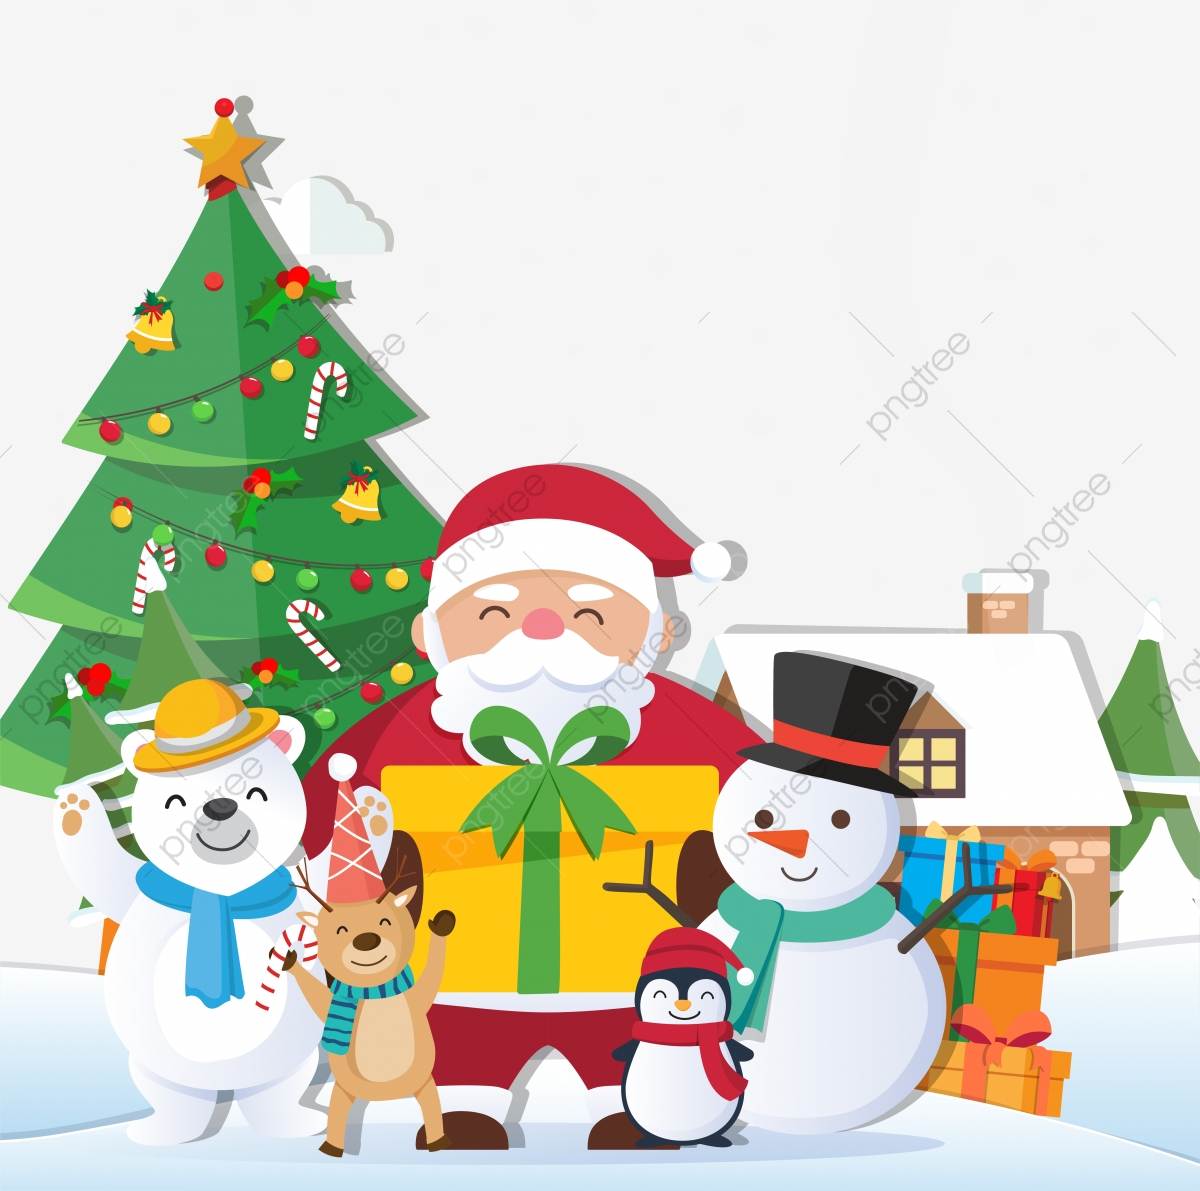 Christmas Background Vector.Christmas Background With Santa Claus And Merry Christmas